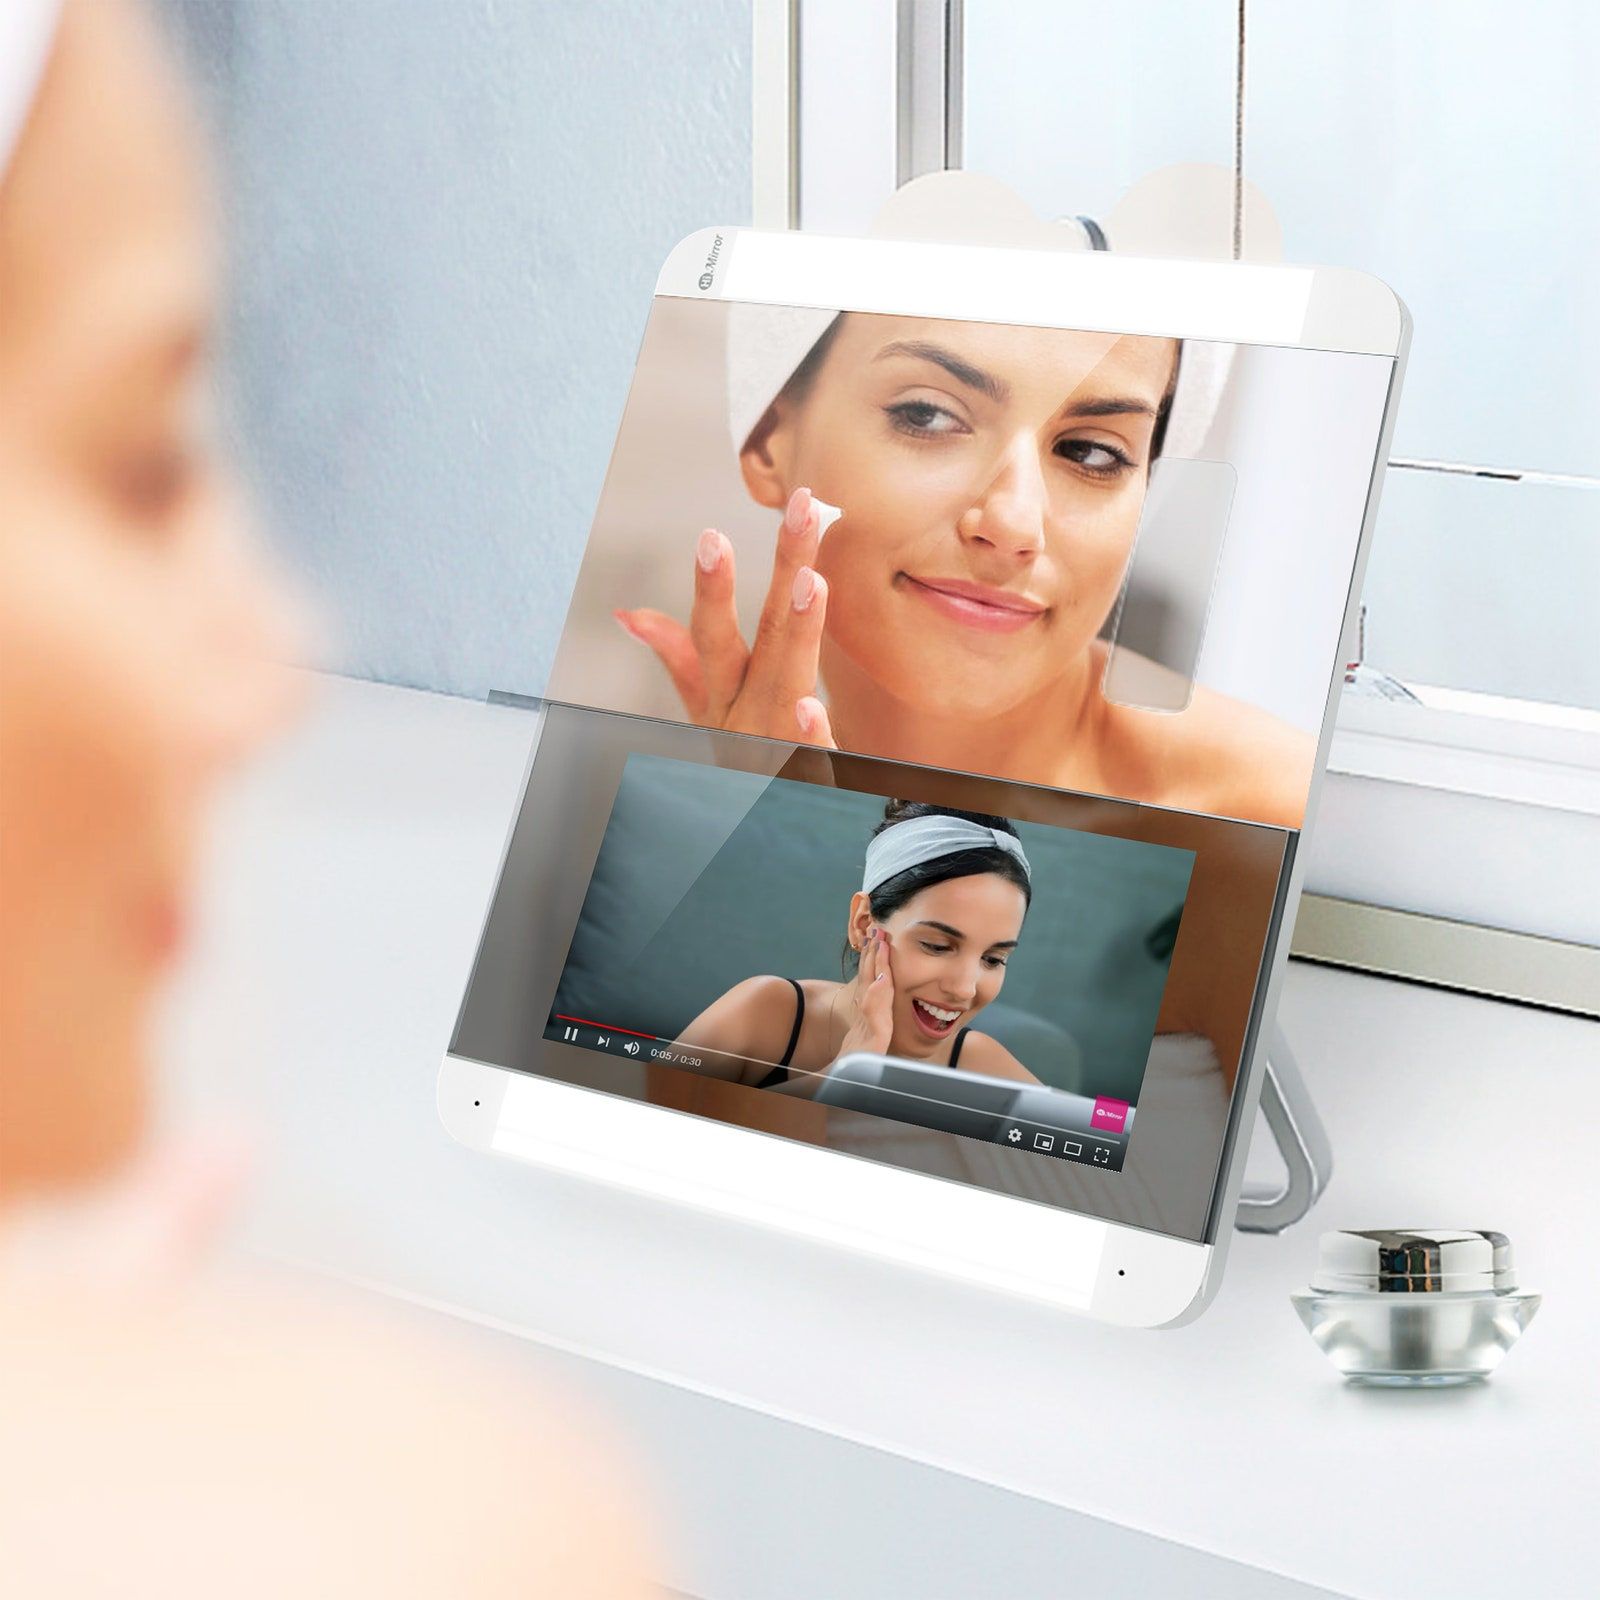 HiMirror Slide Review: A Smart Mirror for Your Makeup or Beauty Routine